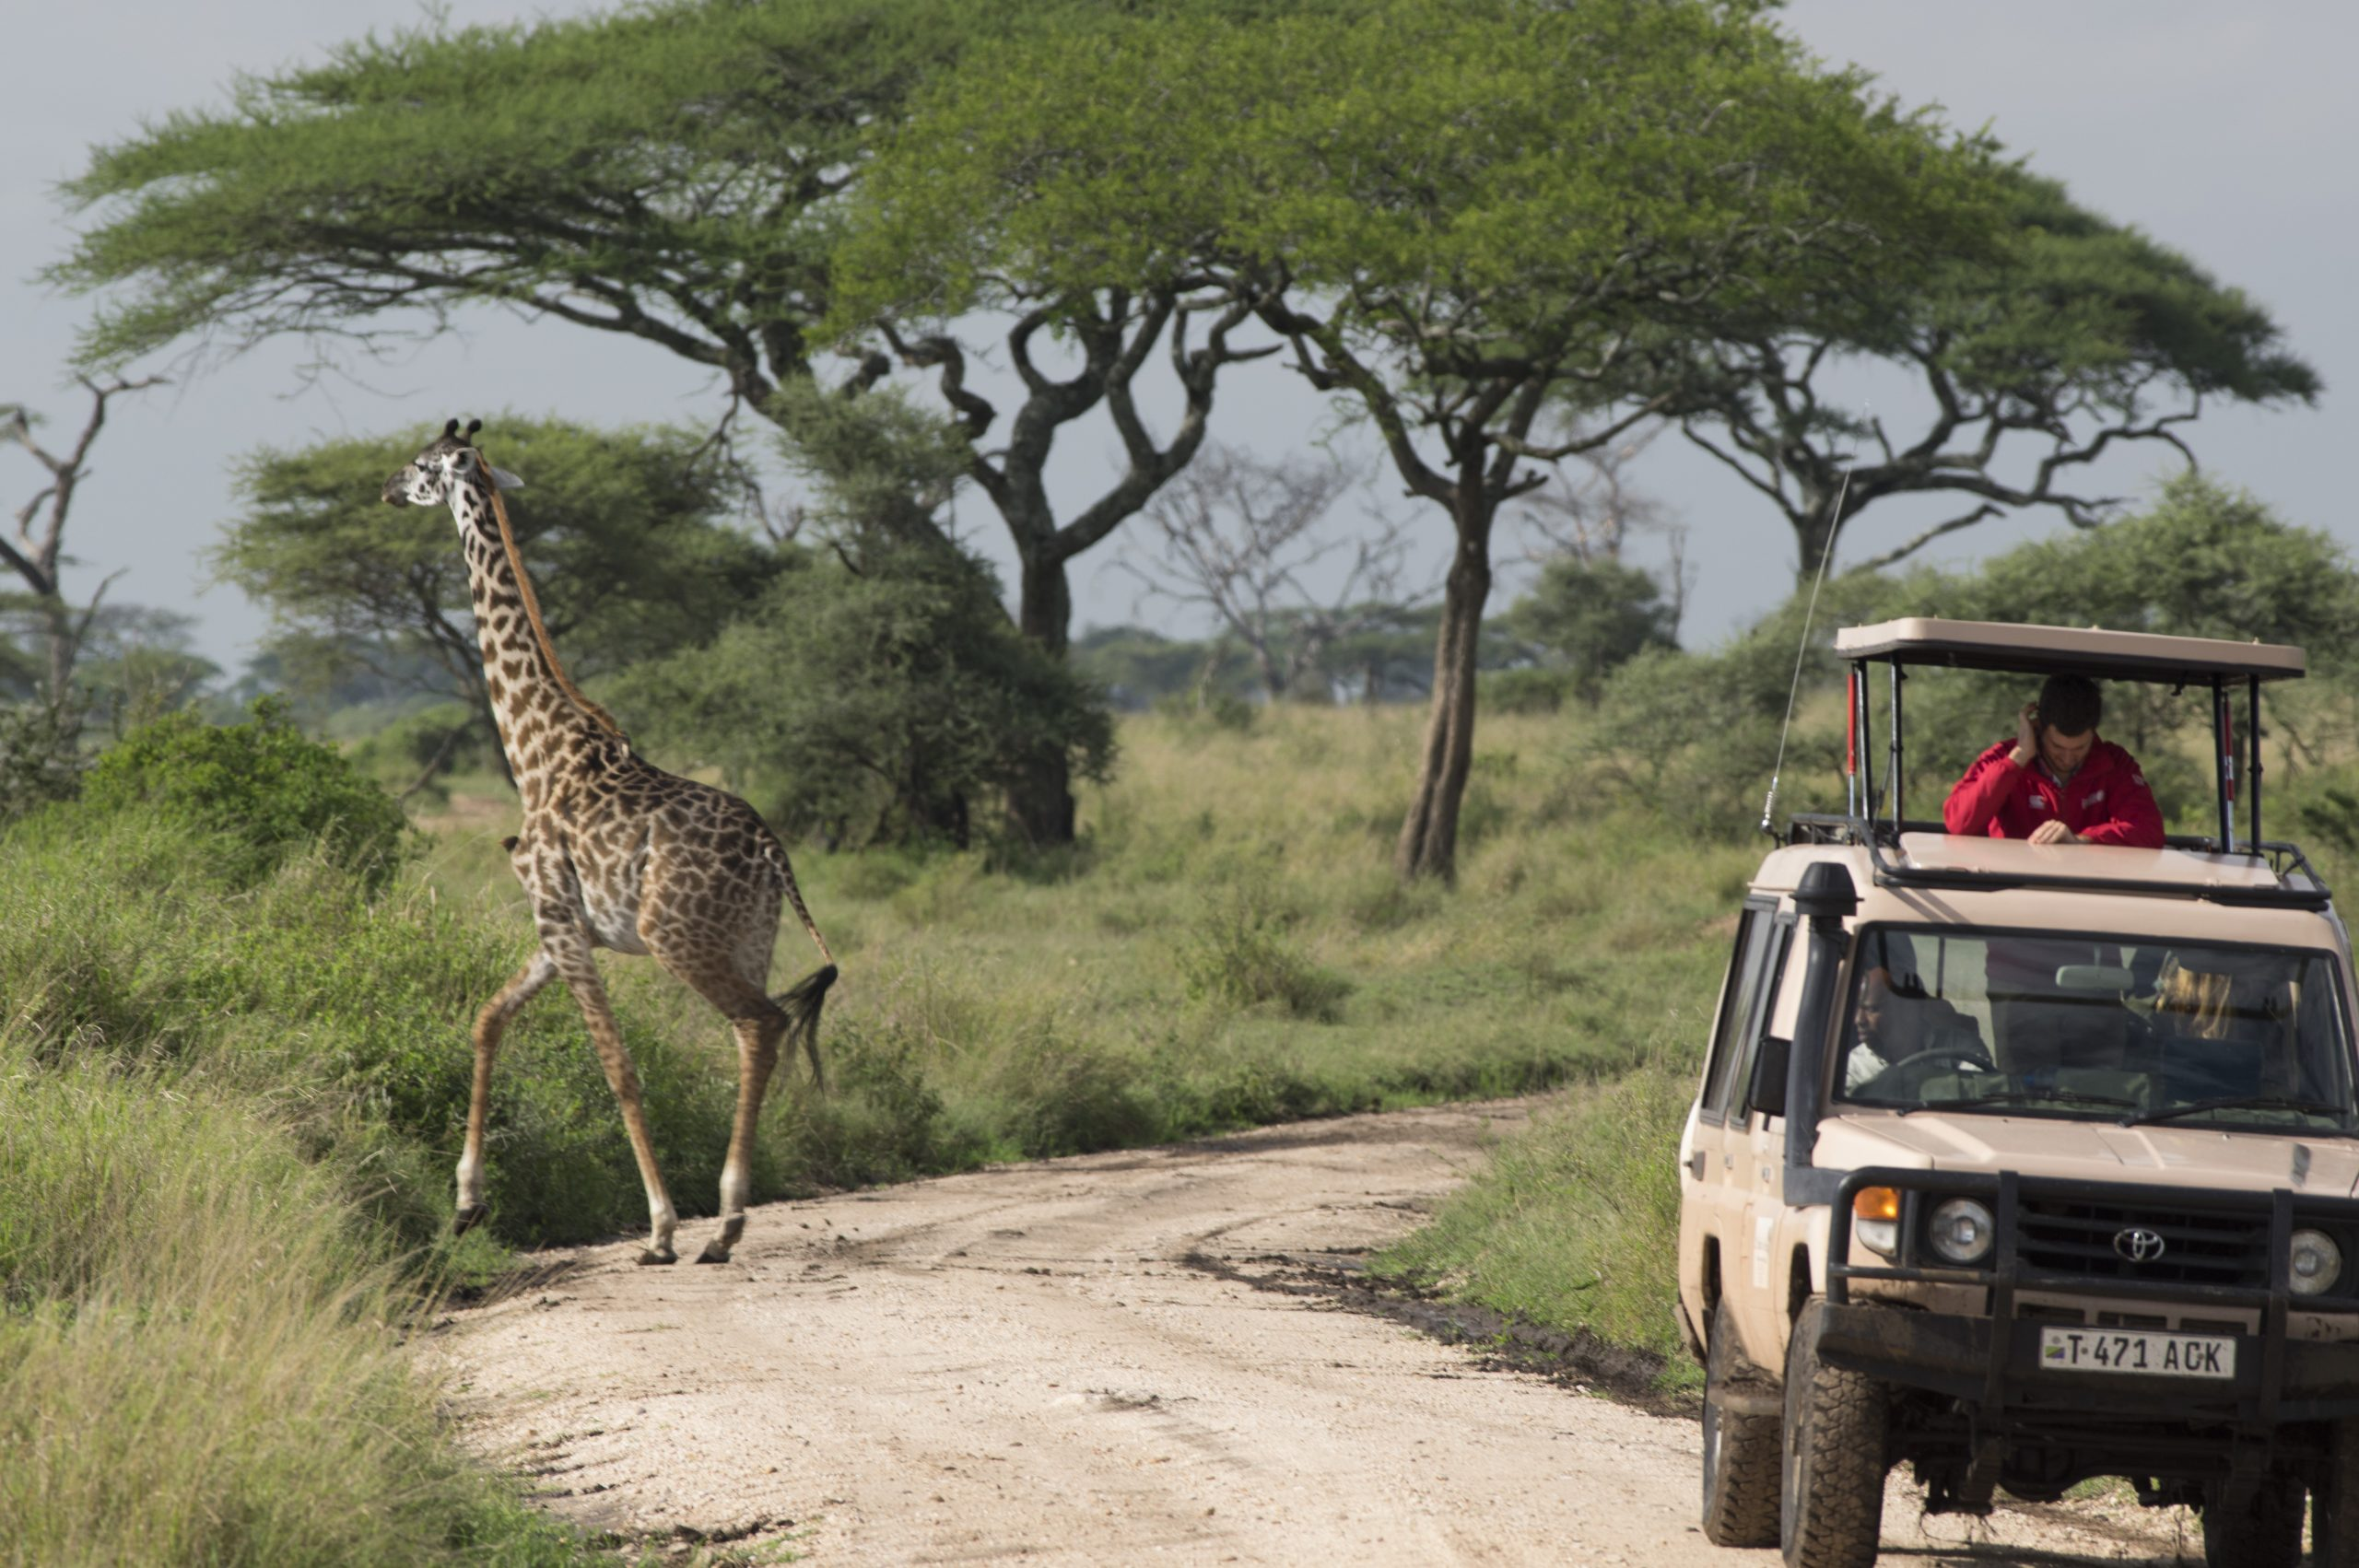 Giraffe And Landcruiser